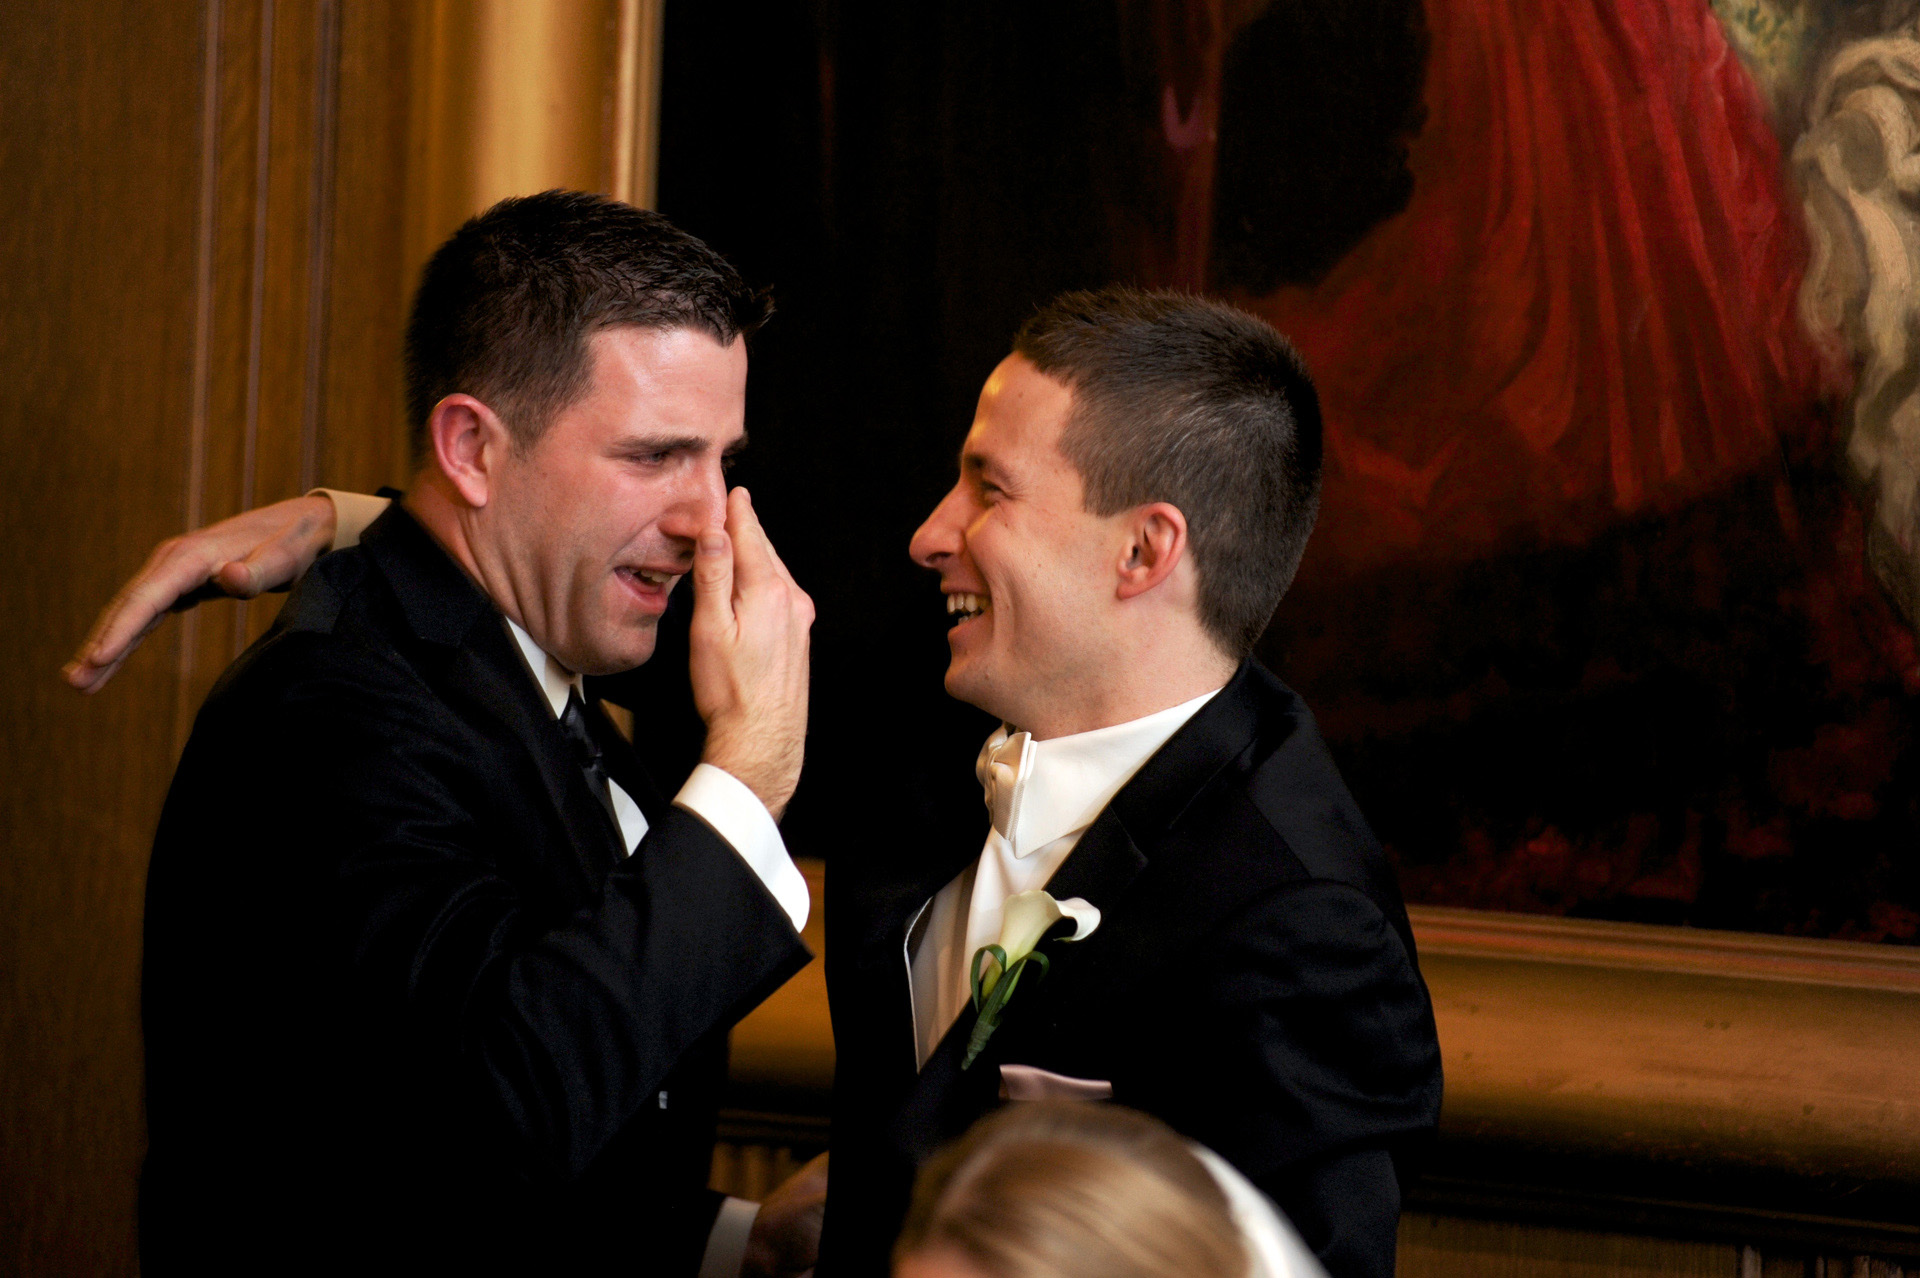 Michigan wedding at Detroit, Michigan, photograph of the groom hugging his crying best man after his speech at the Detroit Athletic Club.